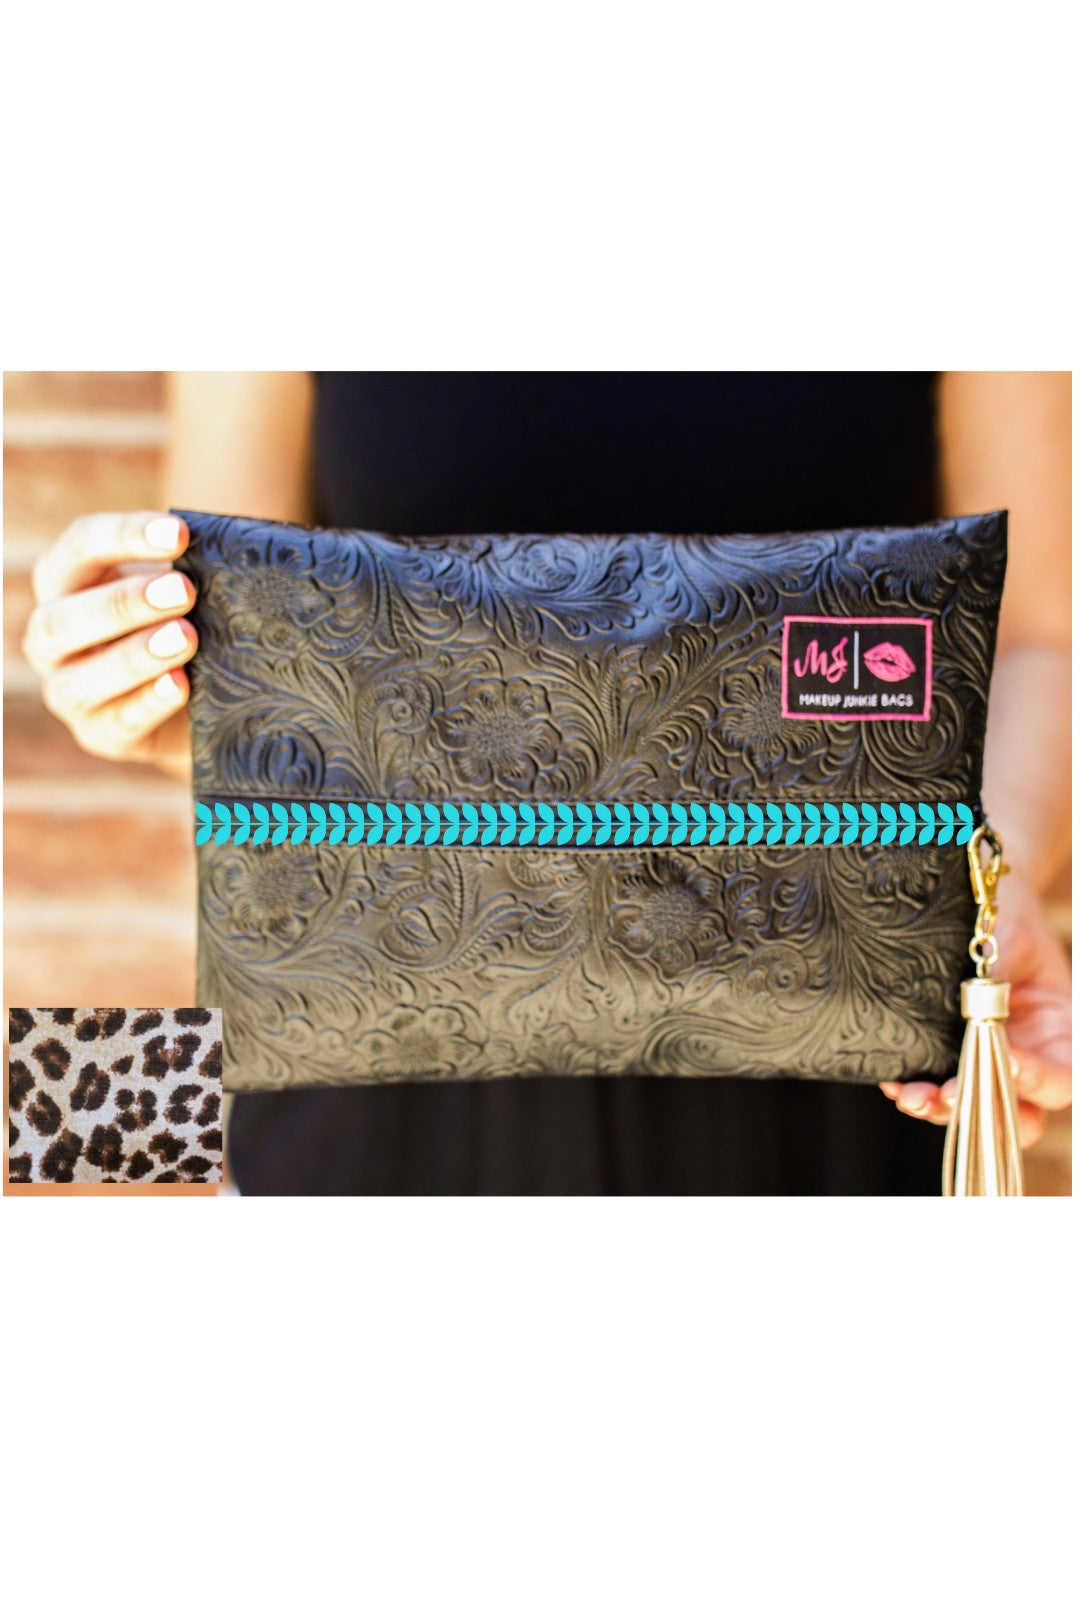 Exclusive Coal miner's Fancy Makeup Junkie bag with teal zipper and leopard lining.